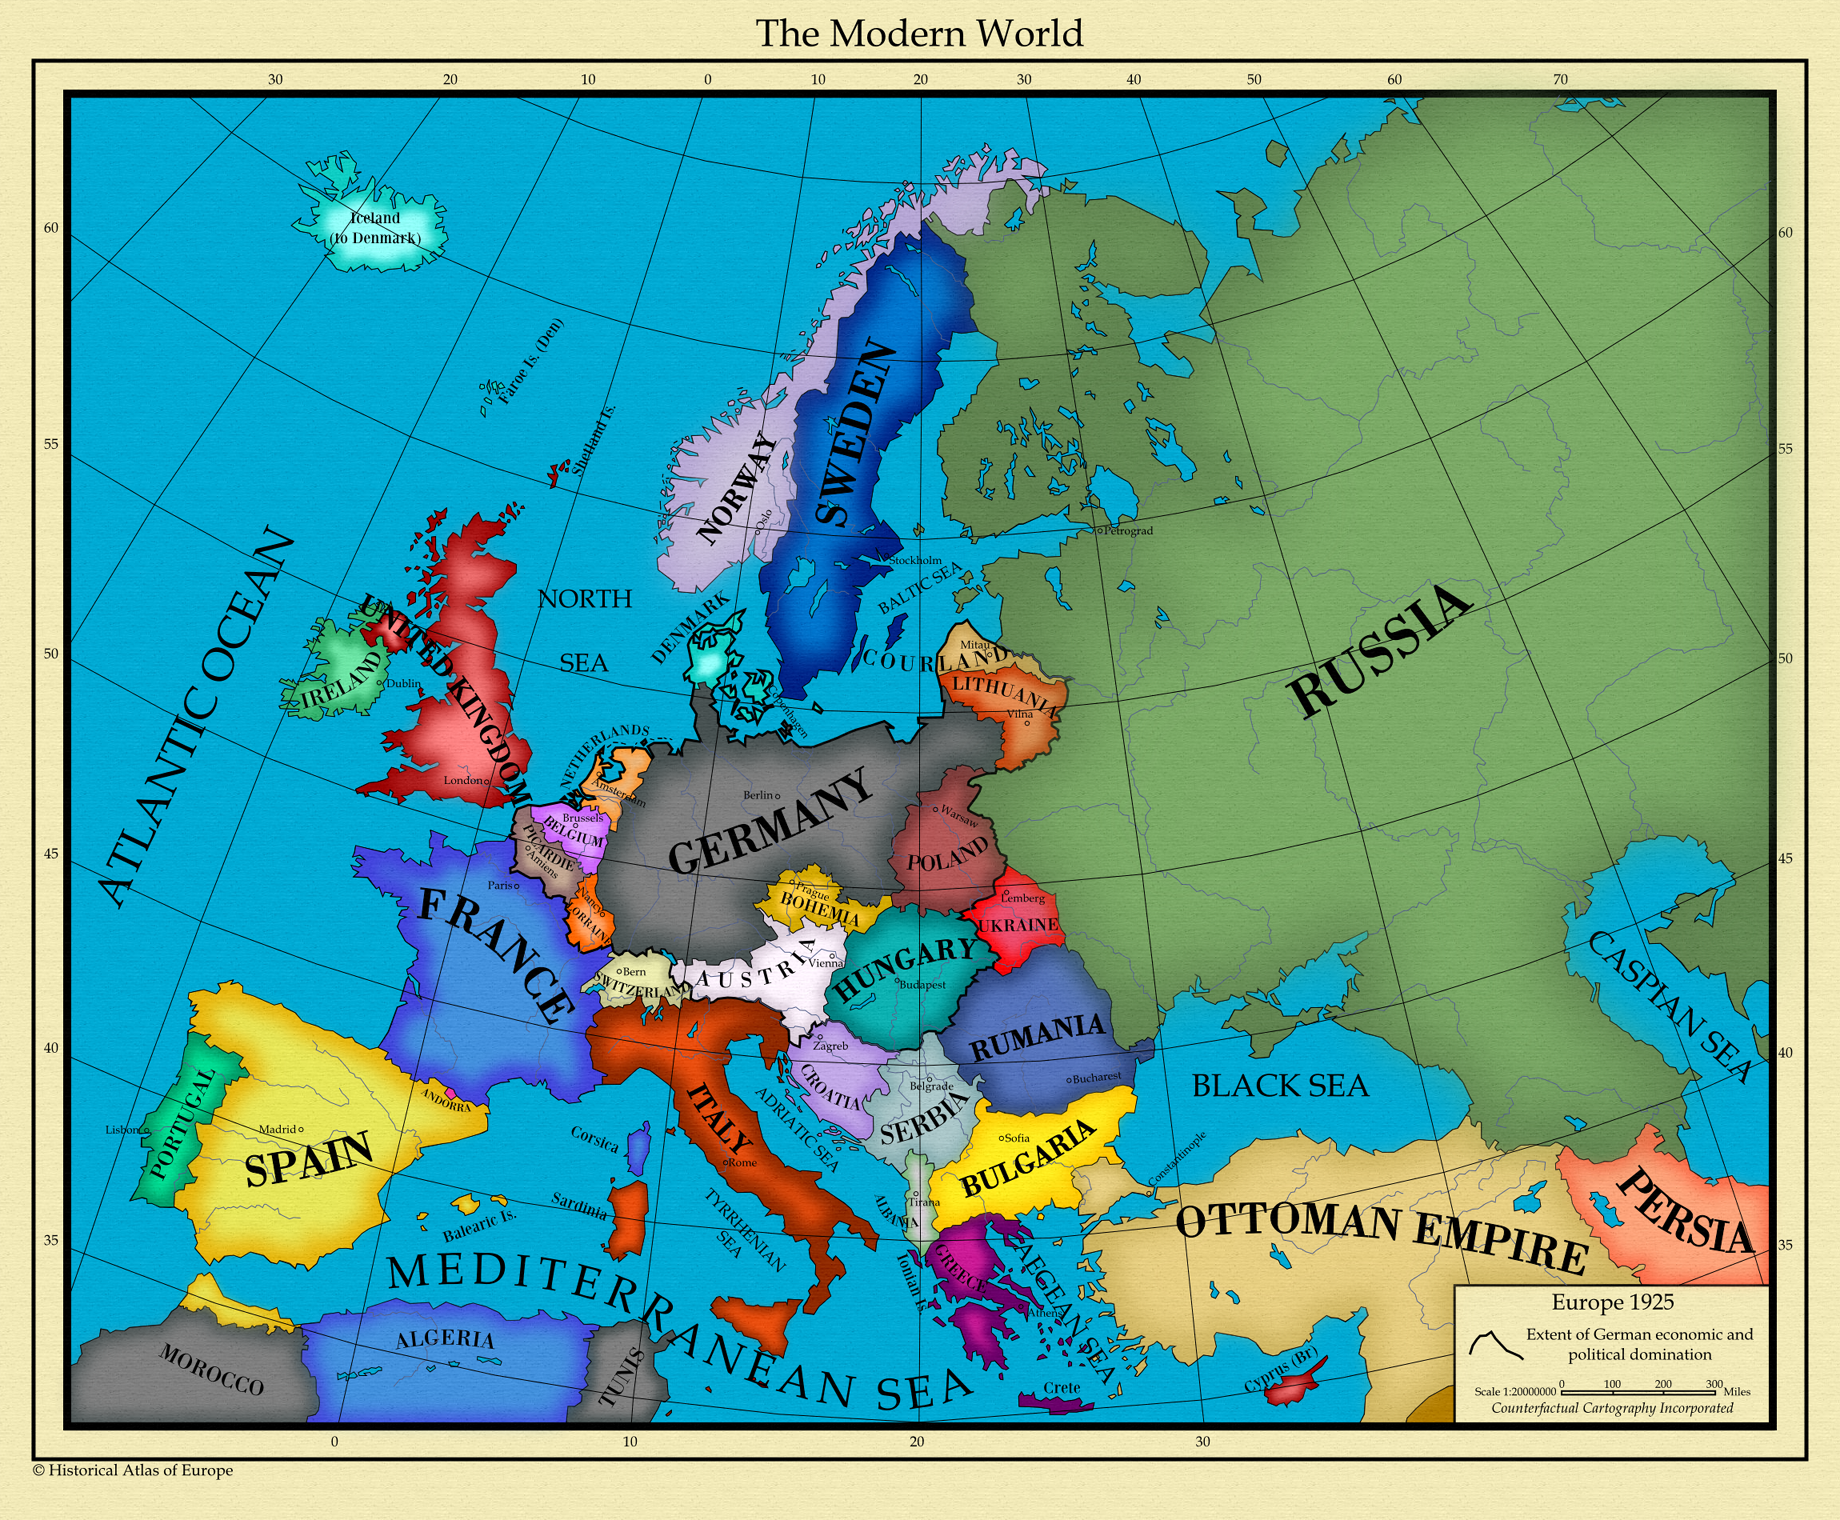 map of europe in 1925 Europe 1925 by AHImperator on DeviantArt